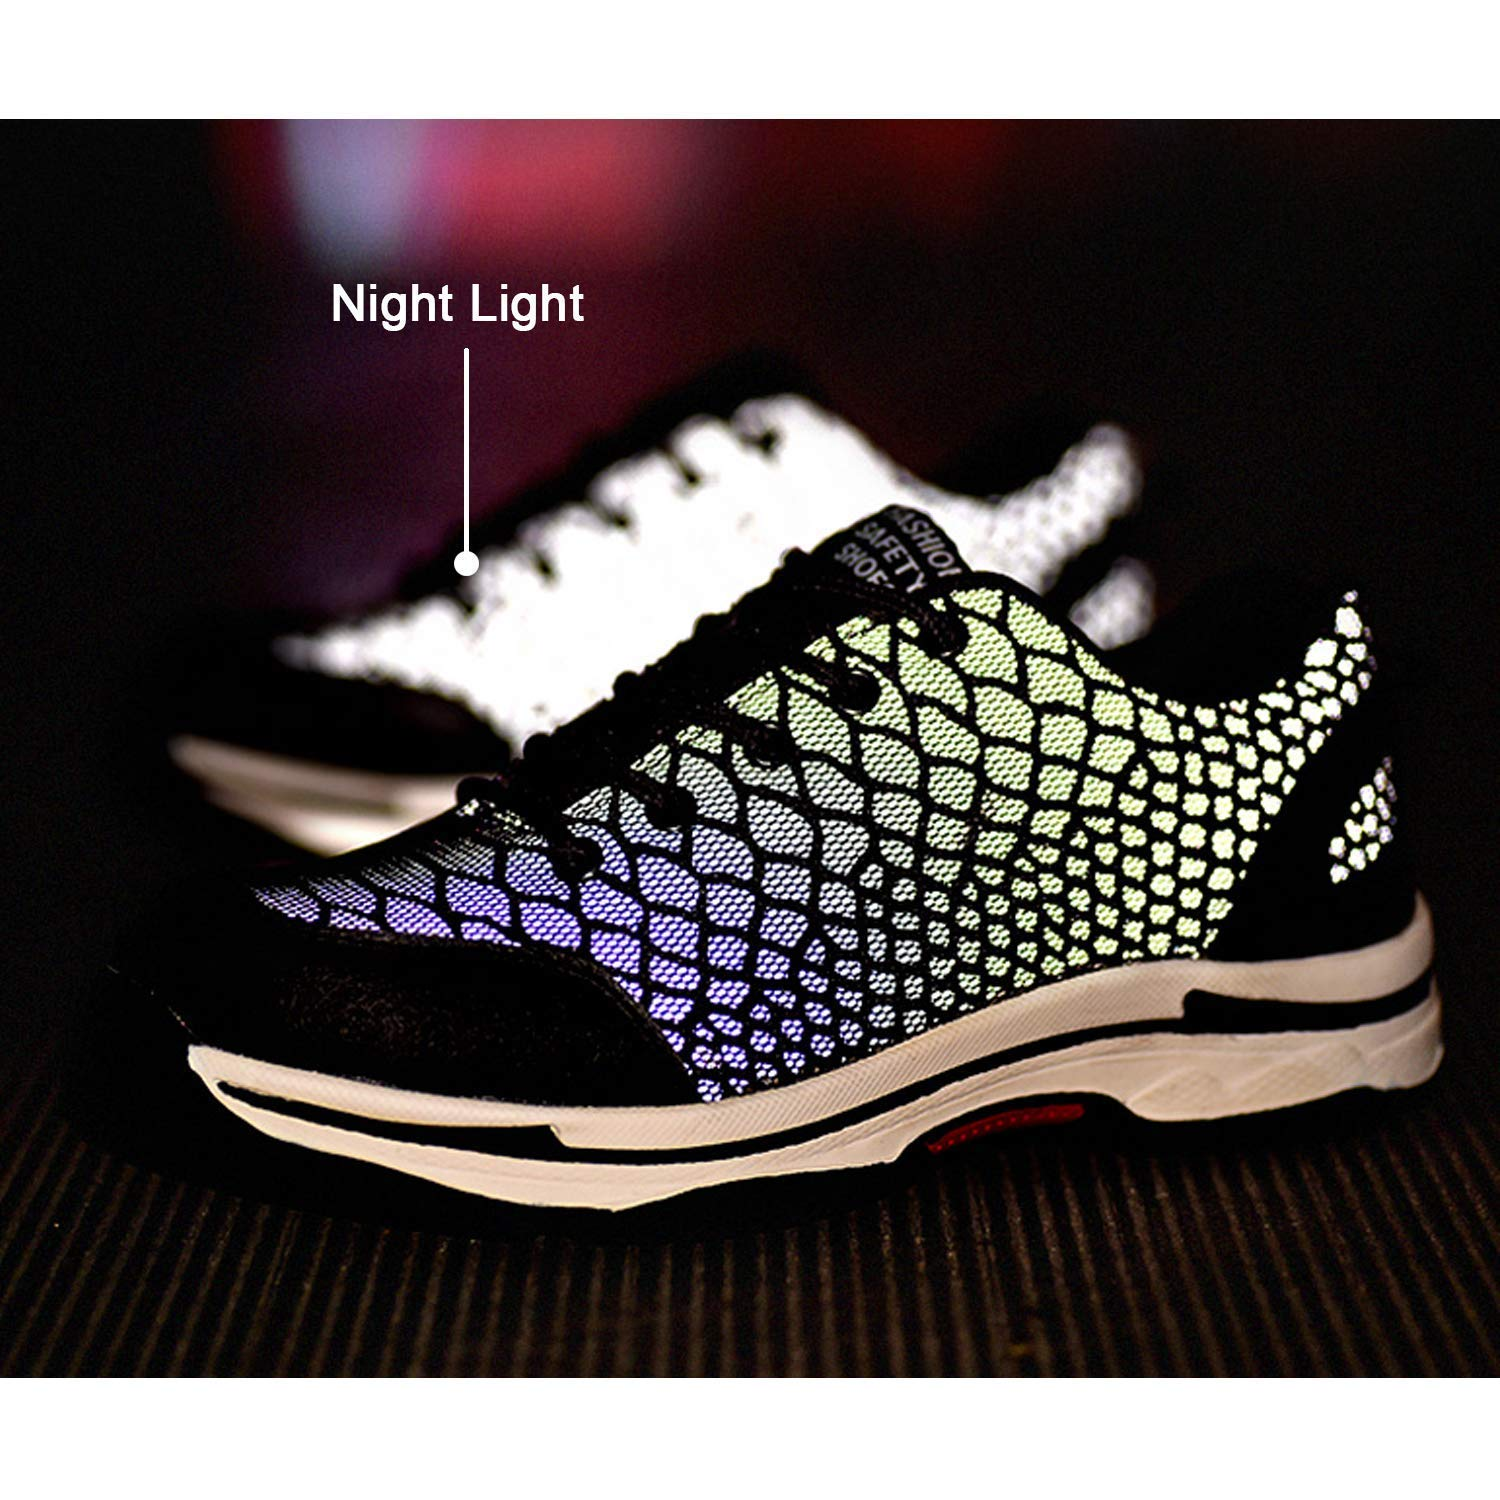 XiXiHao Mens Safety Shoes Night Reflect Light Women Men Work Shoes with Steel Toe Sporty Lightweight Protective Shoes